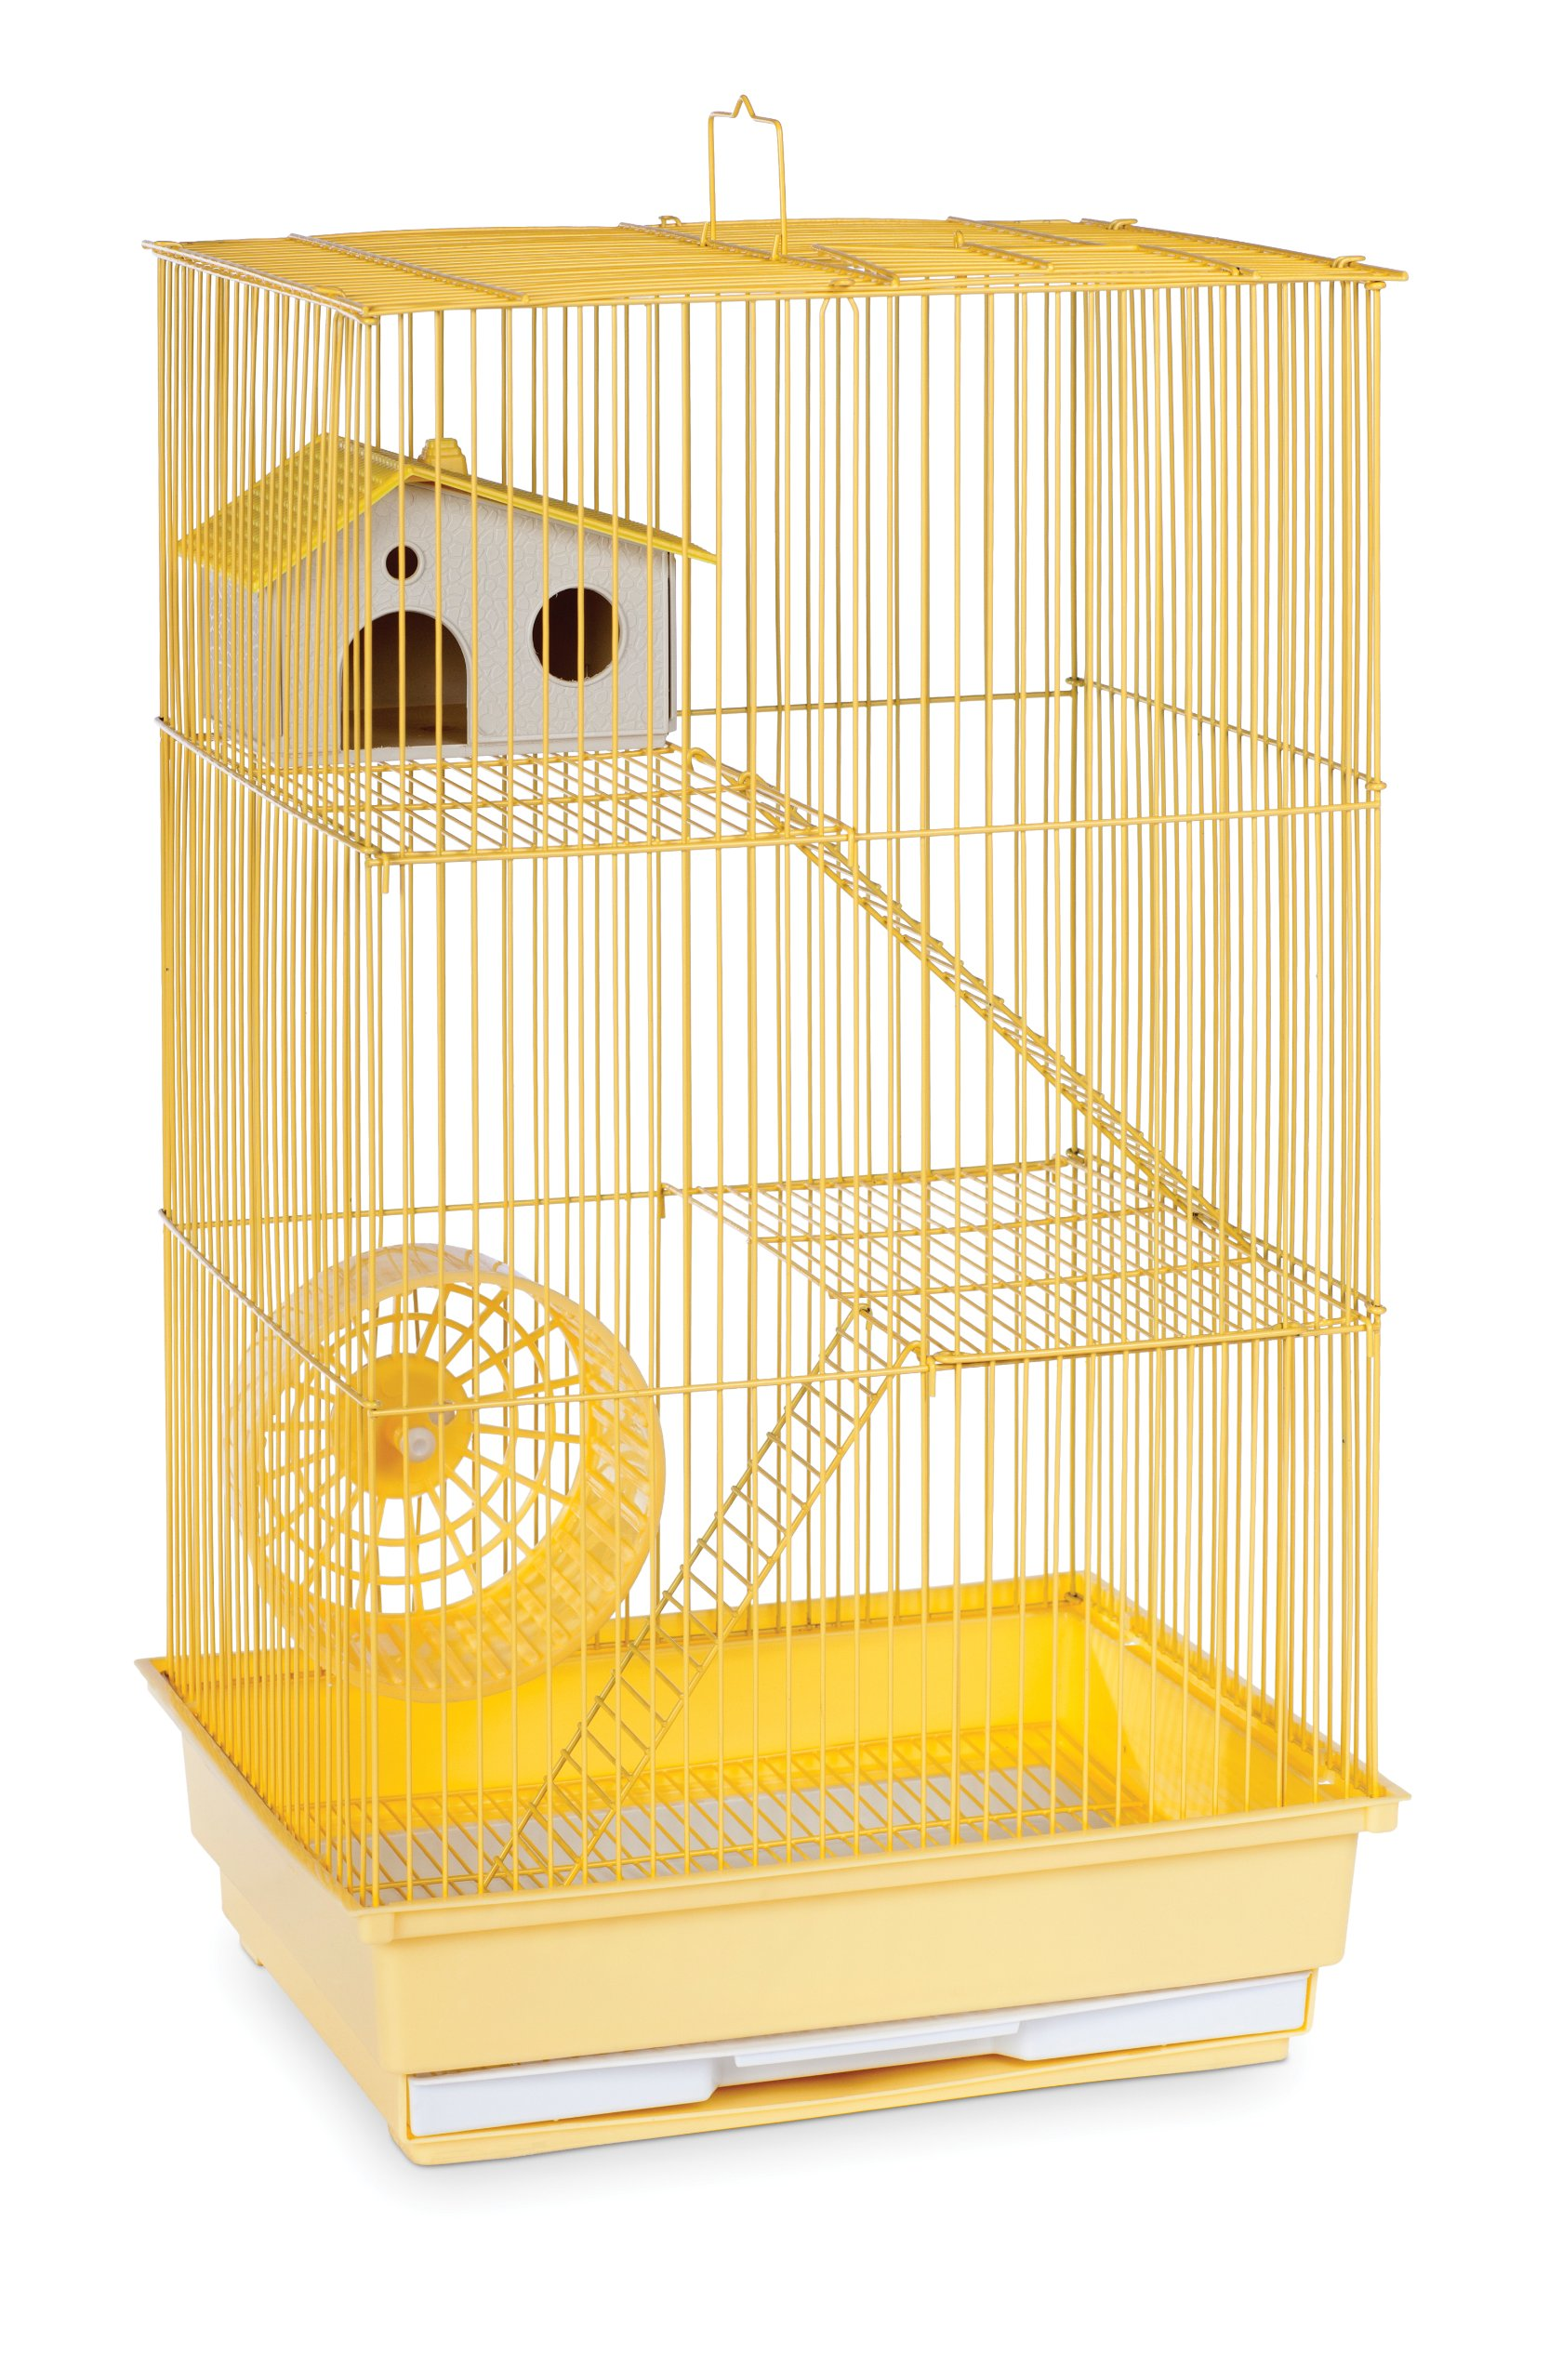 Prevue Hendryx SP2030Y Three Story Hamster and Gerbil Cage, Yellow